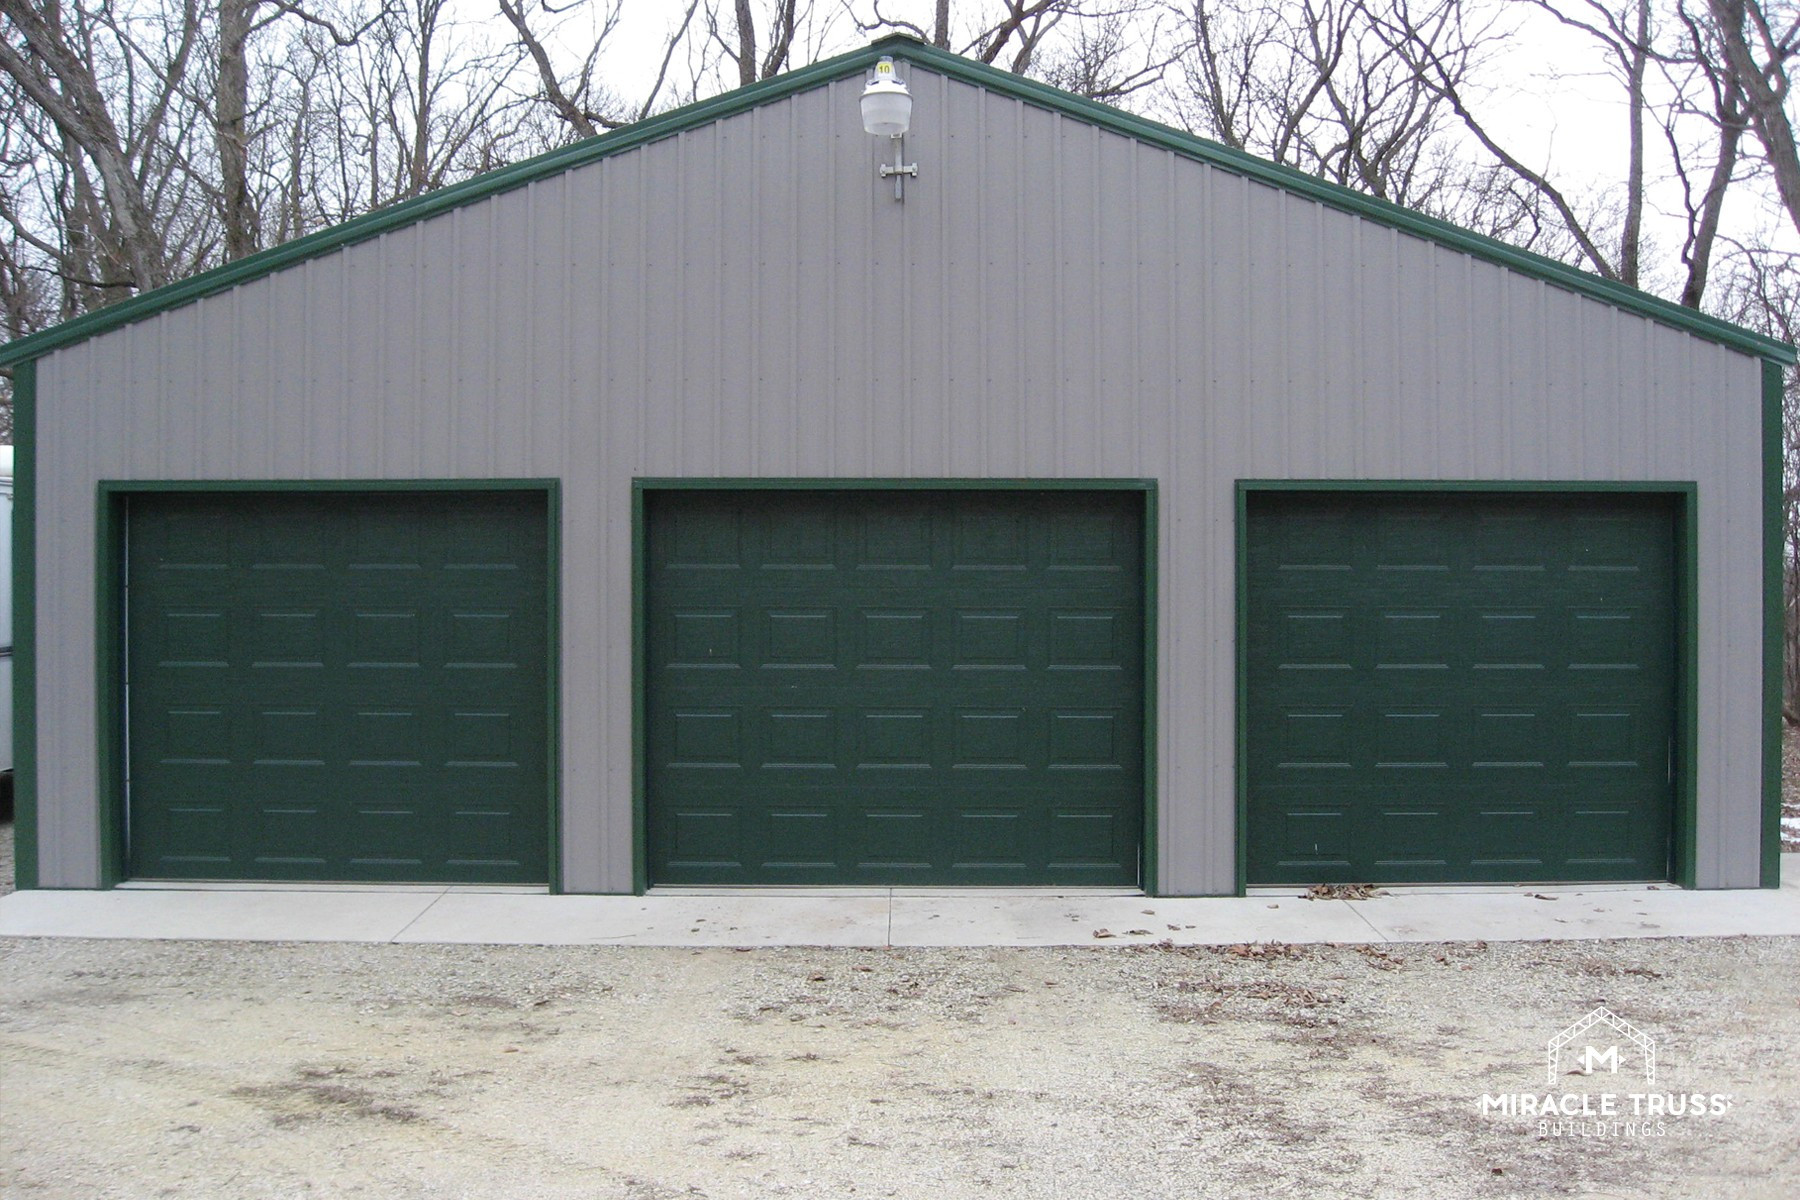 Best ideas about DIY Building Kits . Save or Pin Easy Assemble DIY Metal Garage or Shop Now.